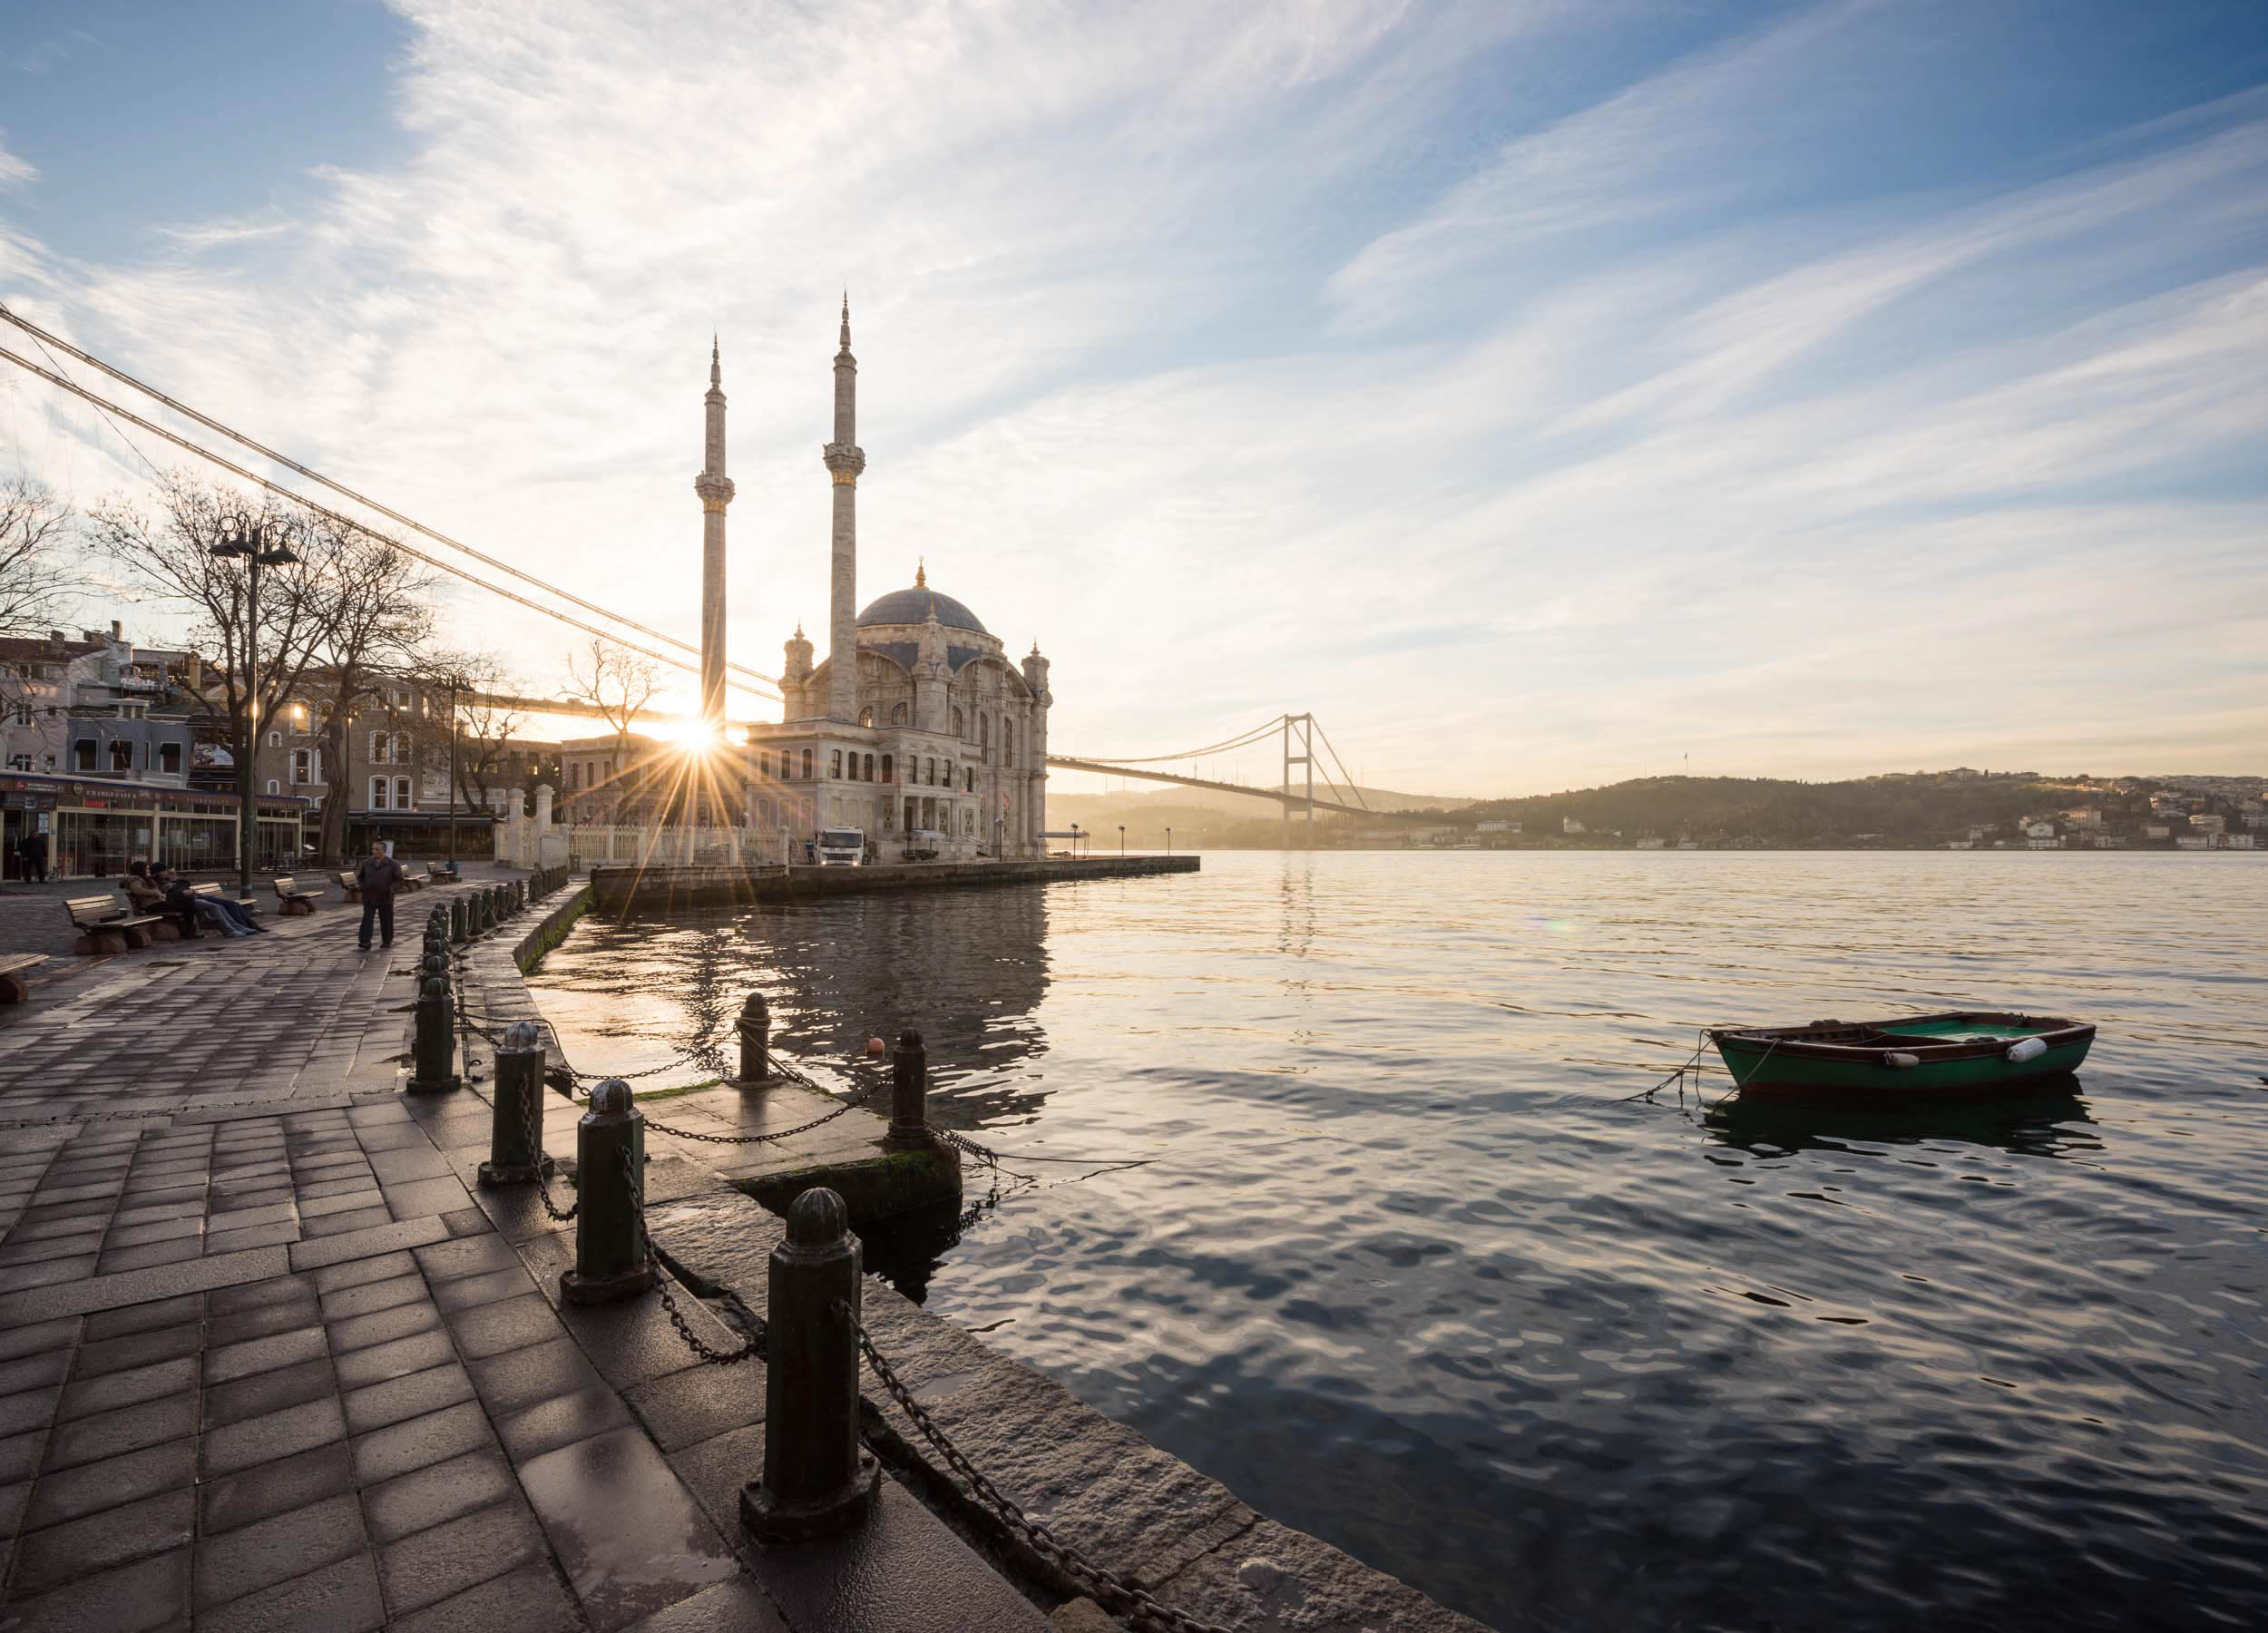 ortakoy-mosque-bhosphorus-bridge-dawn-travel-photography-istanbul-city-turkey